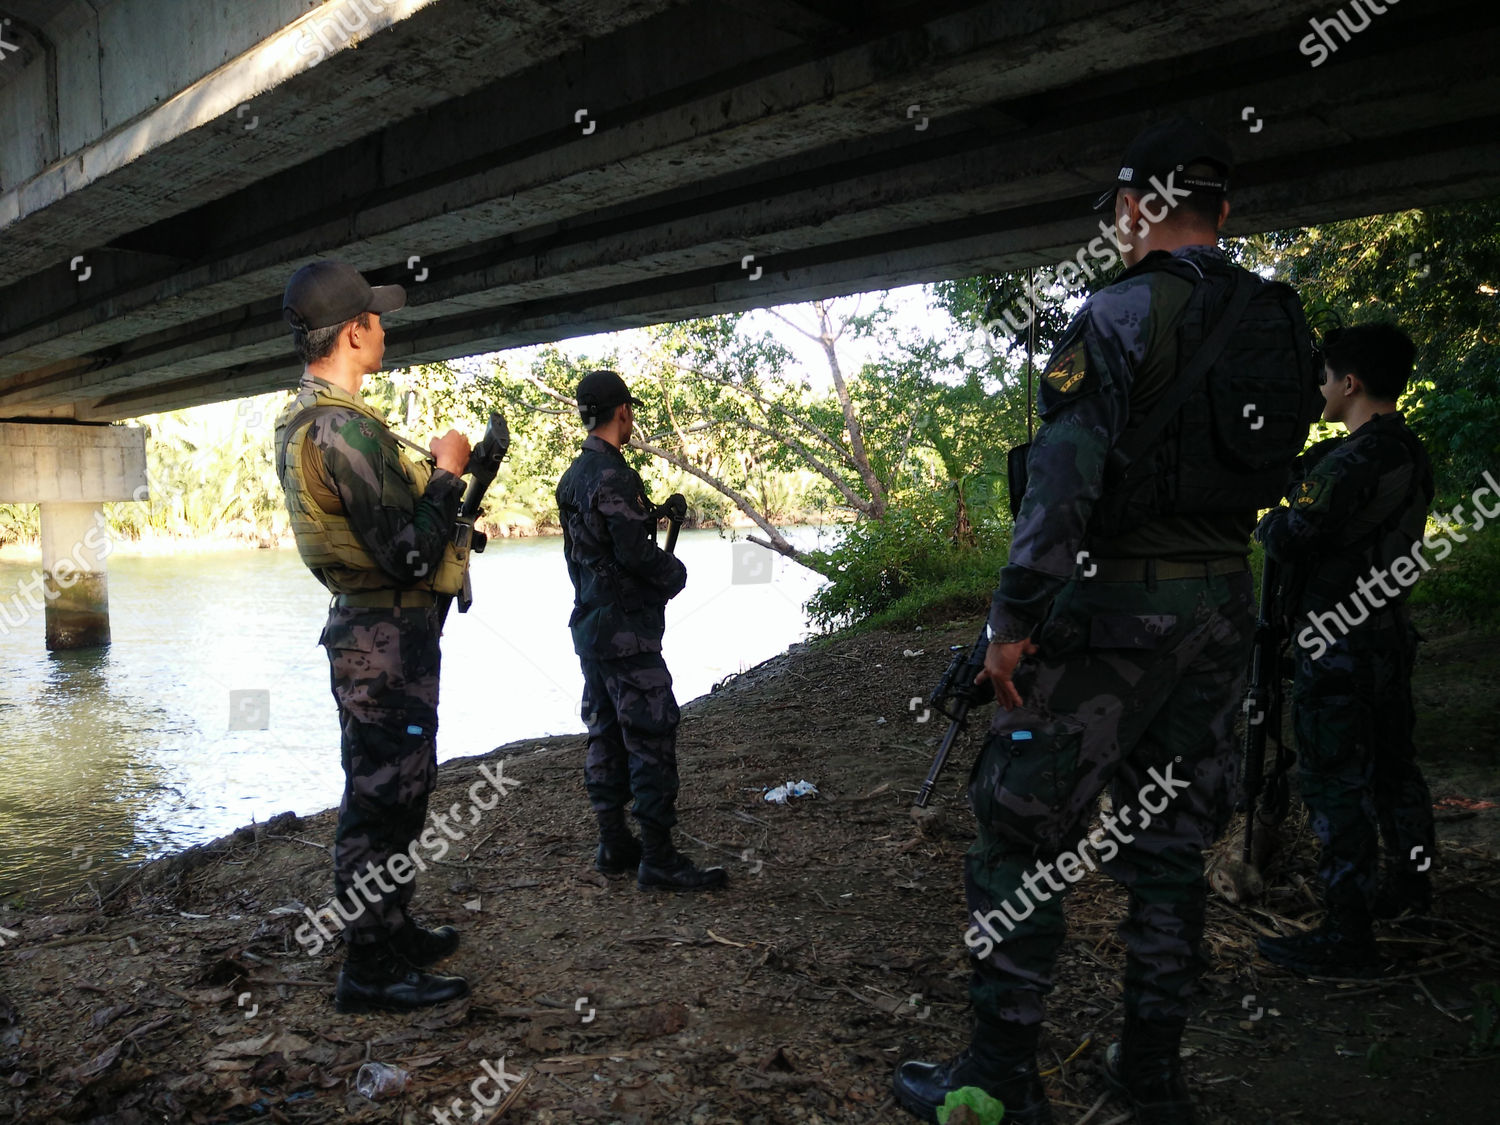 Filipino soldiers stand guard along river during Editorial